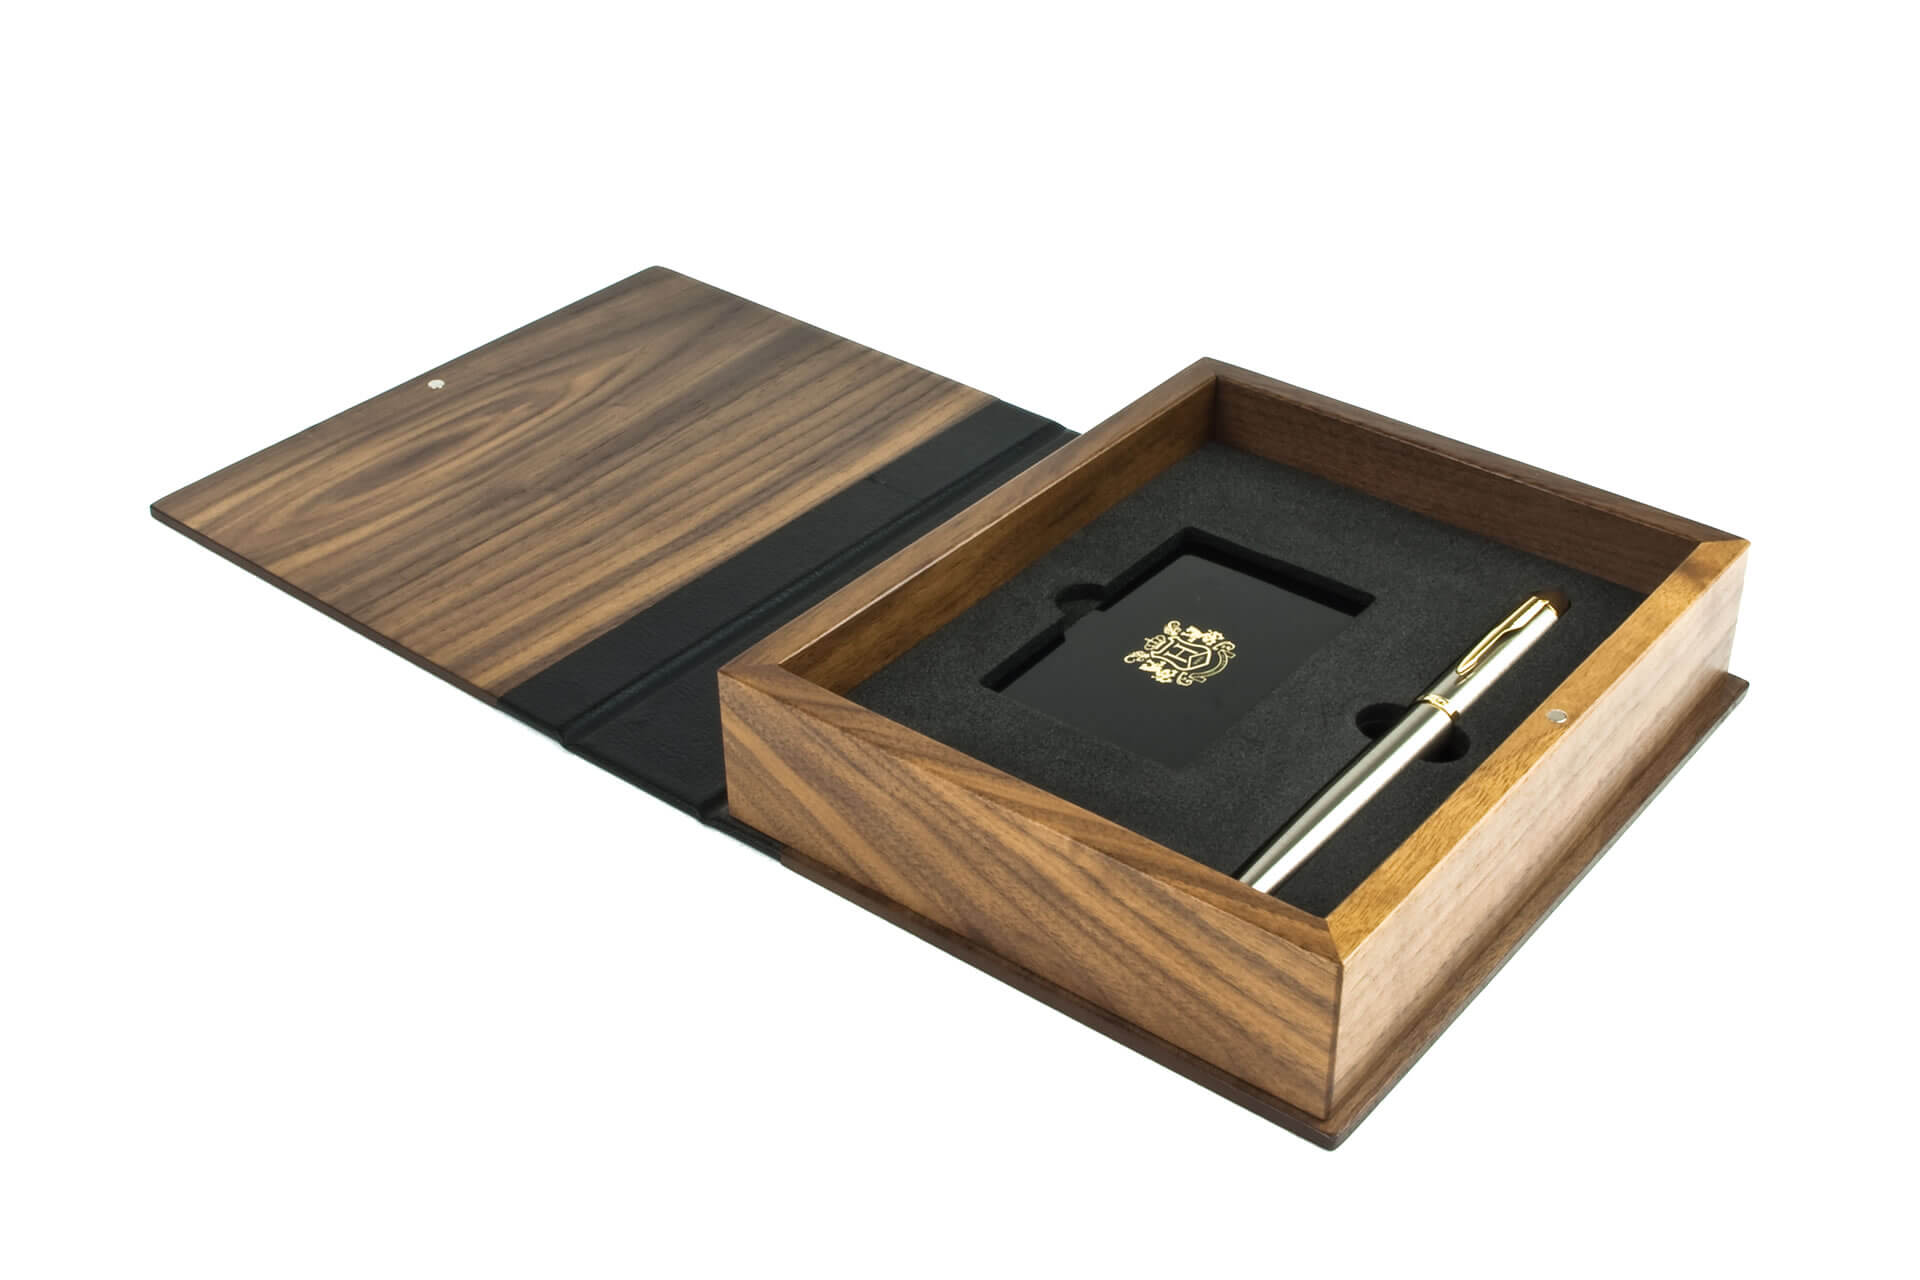 hale bespoke wooden folding lid presentation membership box open lid profile detail